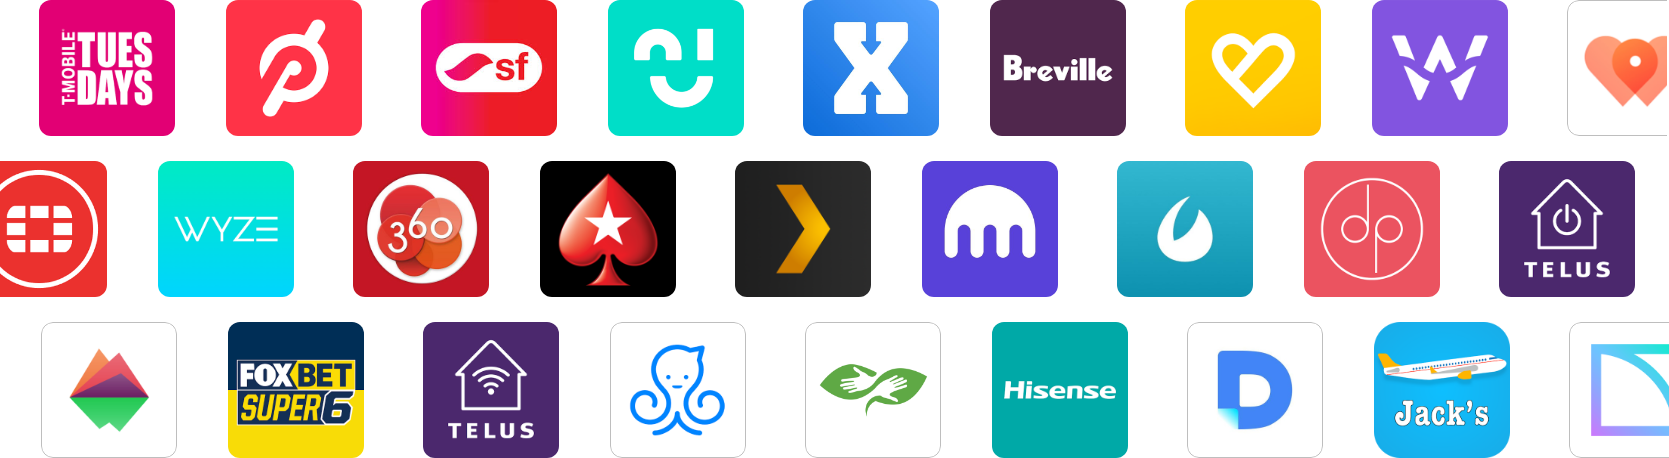 Company App Icons That Use AppReviewBot